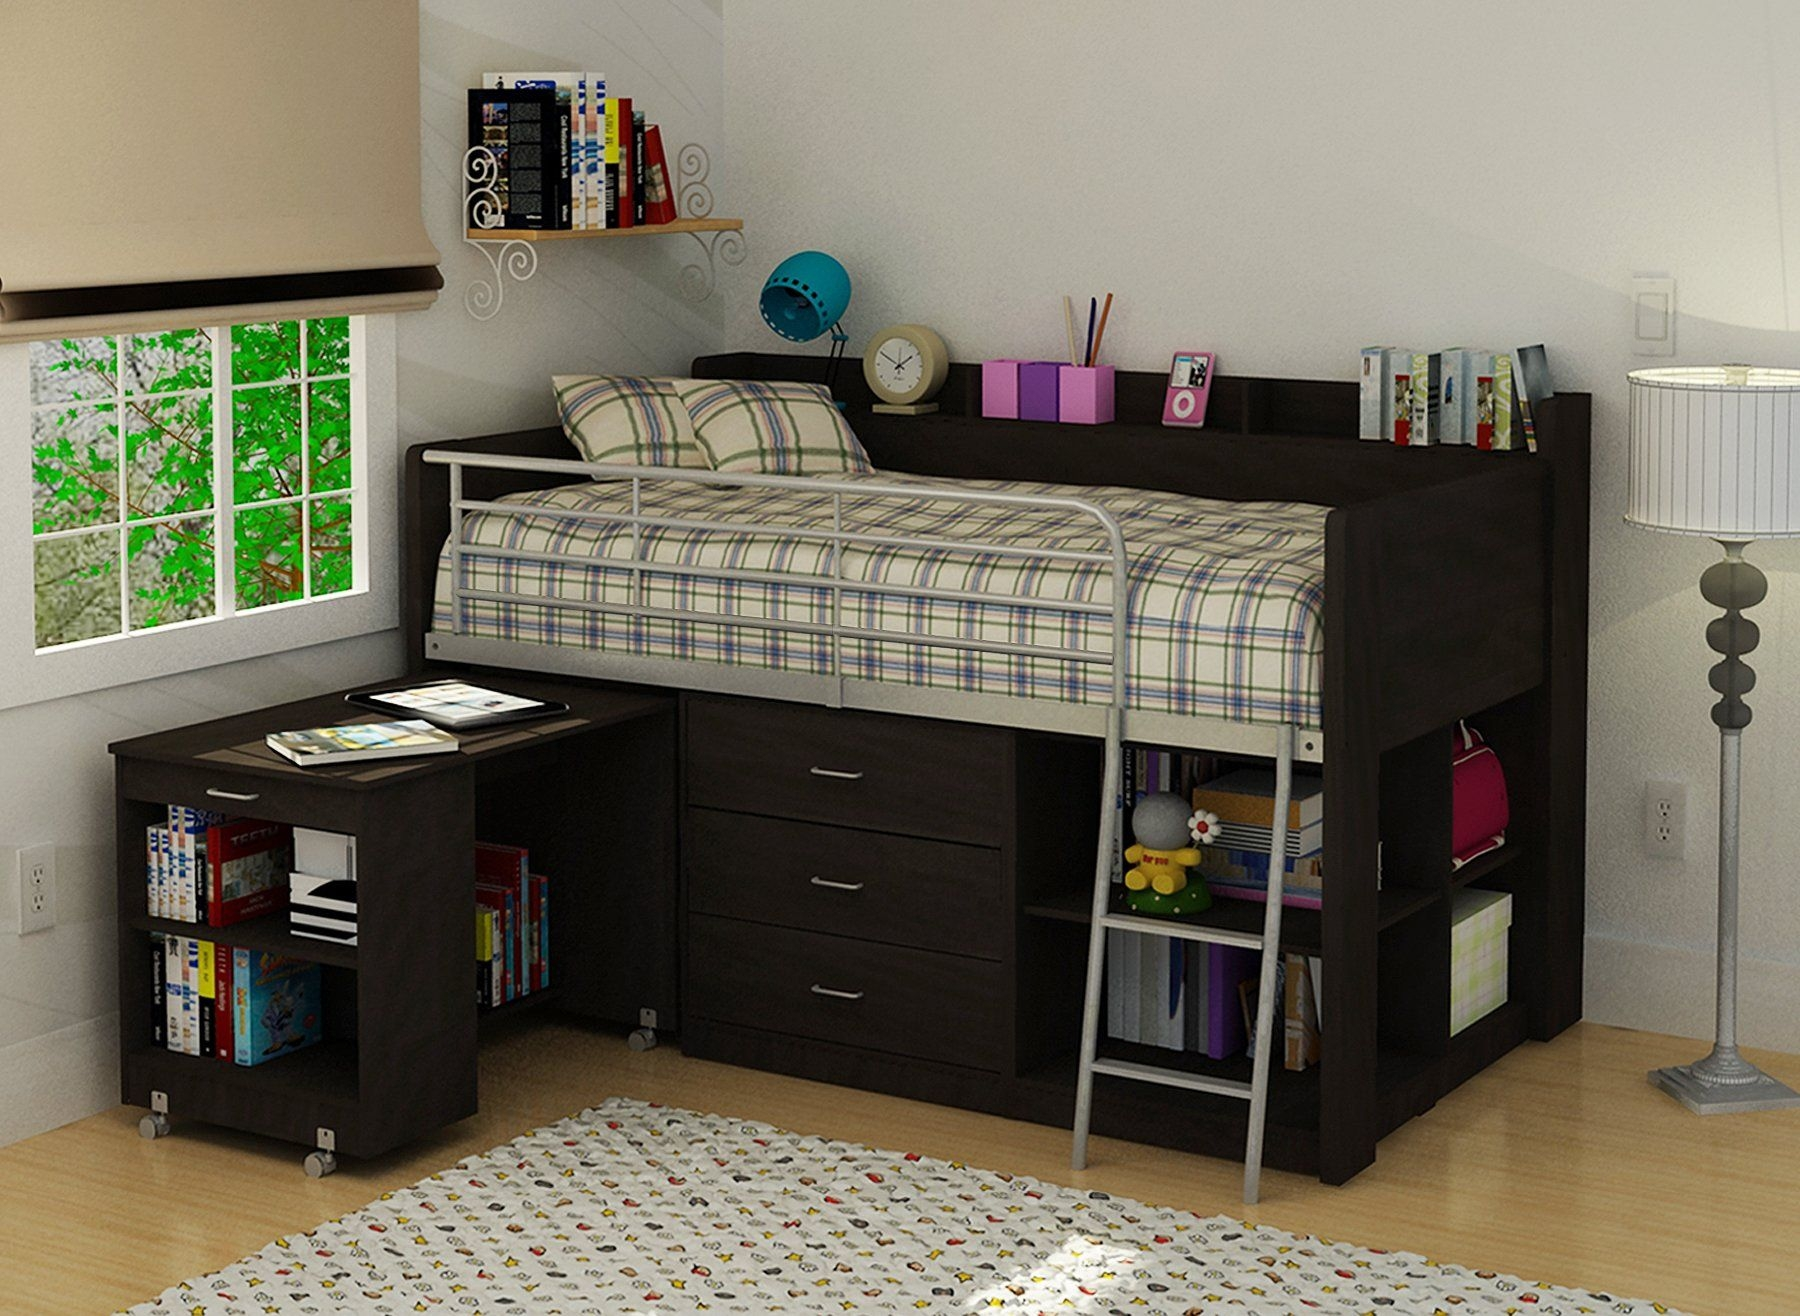 Charmant Bed With Study Table Design